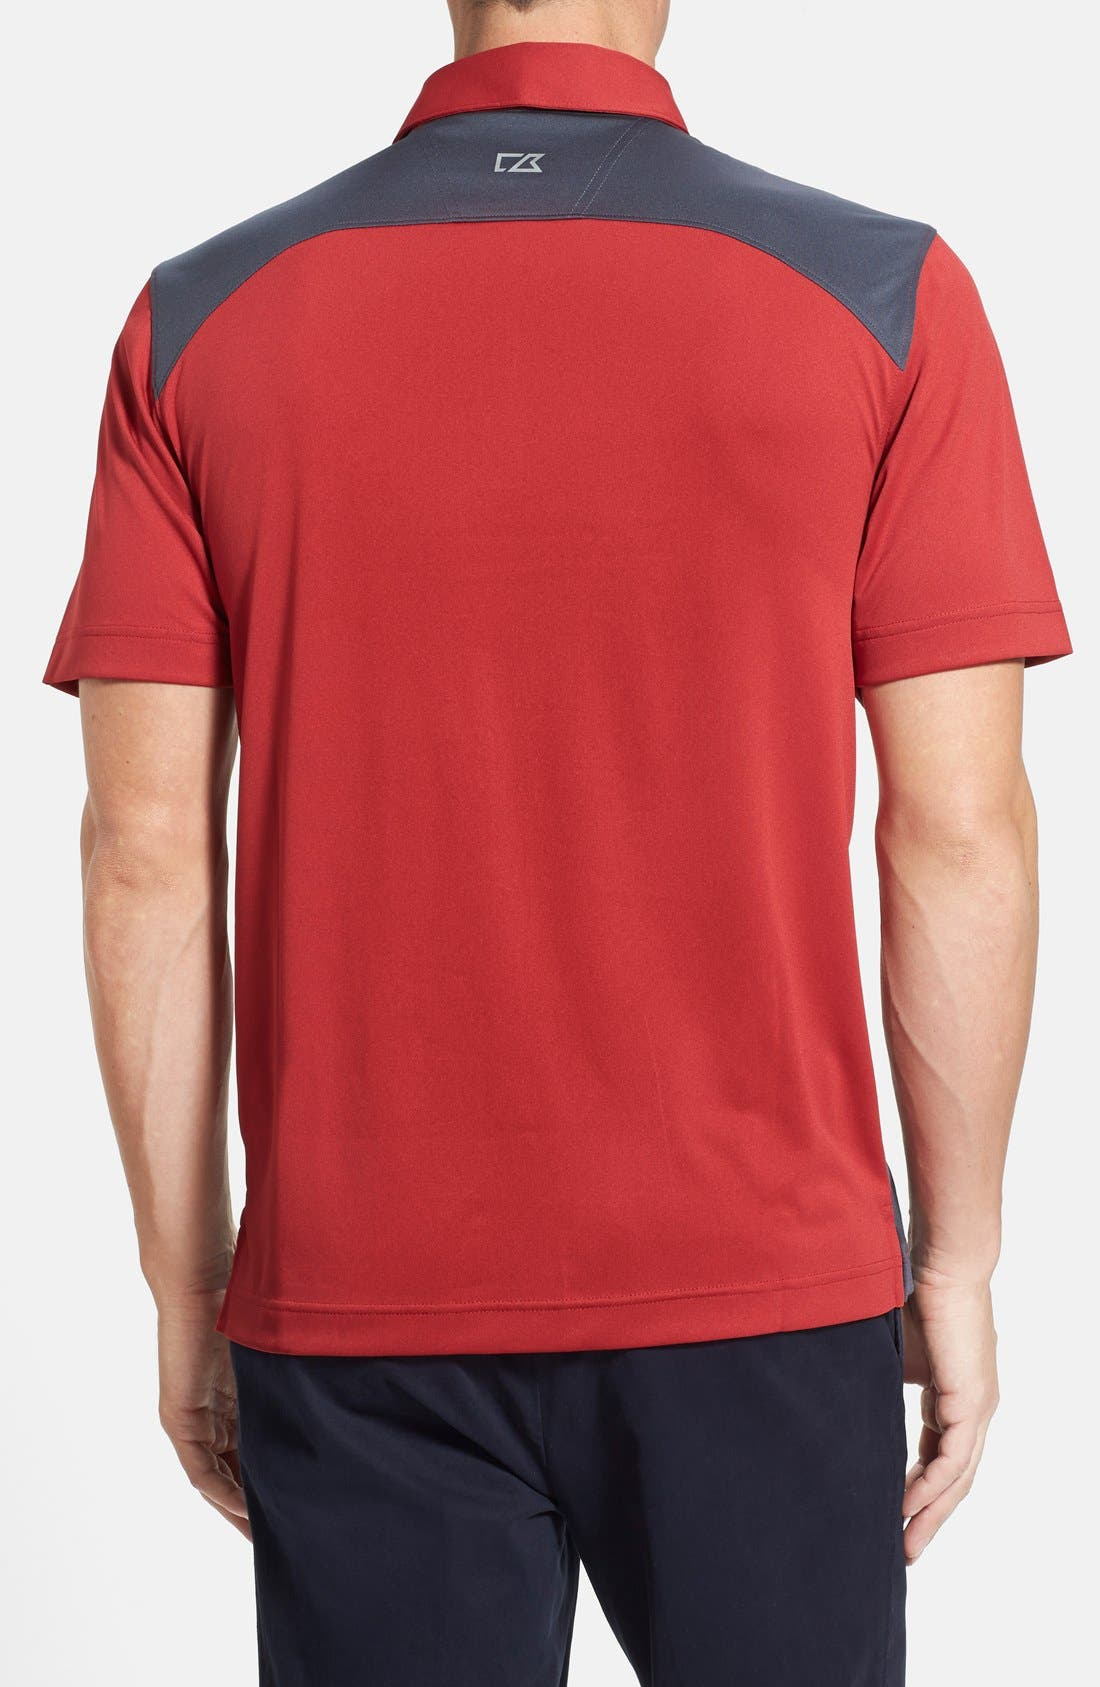 'Willows' Colorblock DryTec Polo,                             Alternate thumbnail 3, color,                             CARDINAL RED/ ONYX